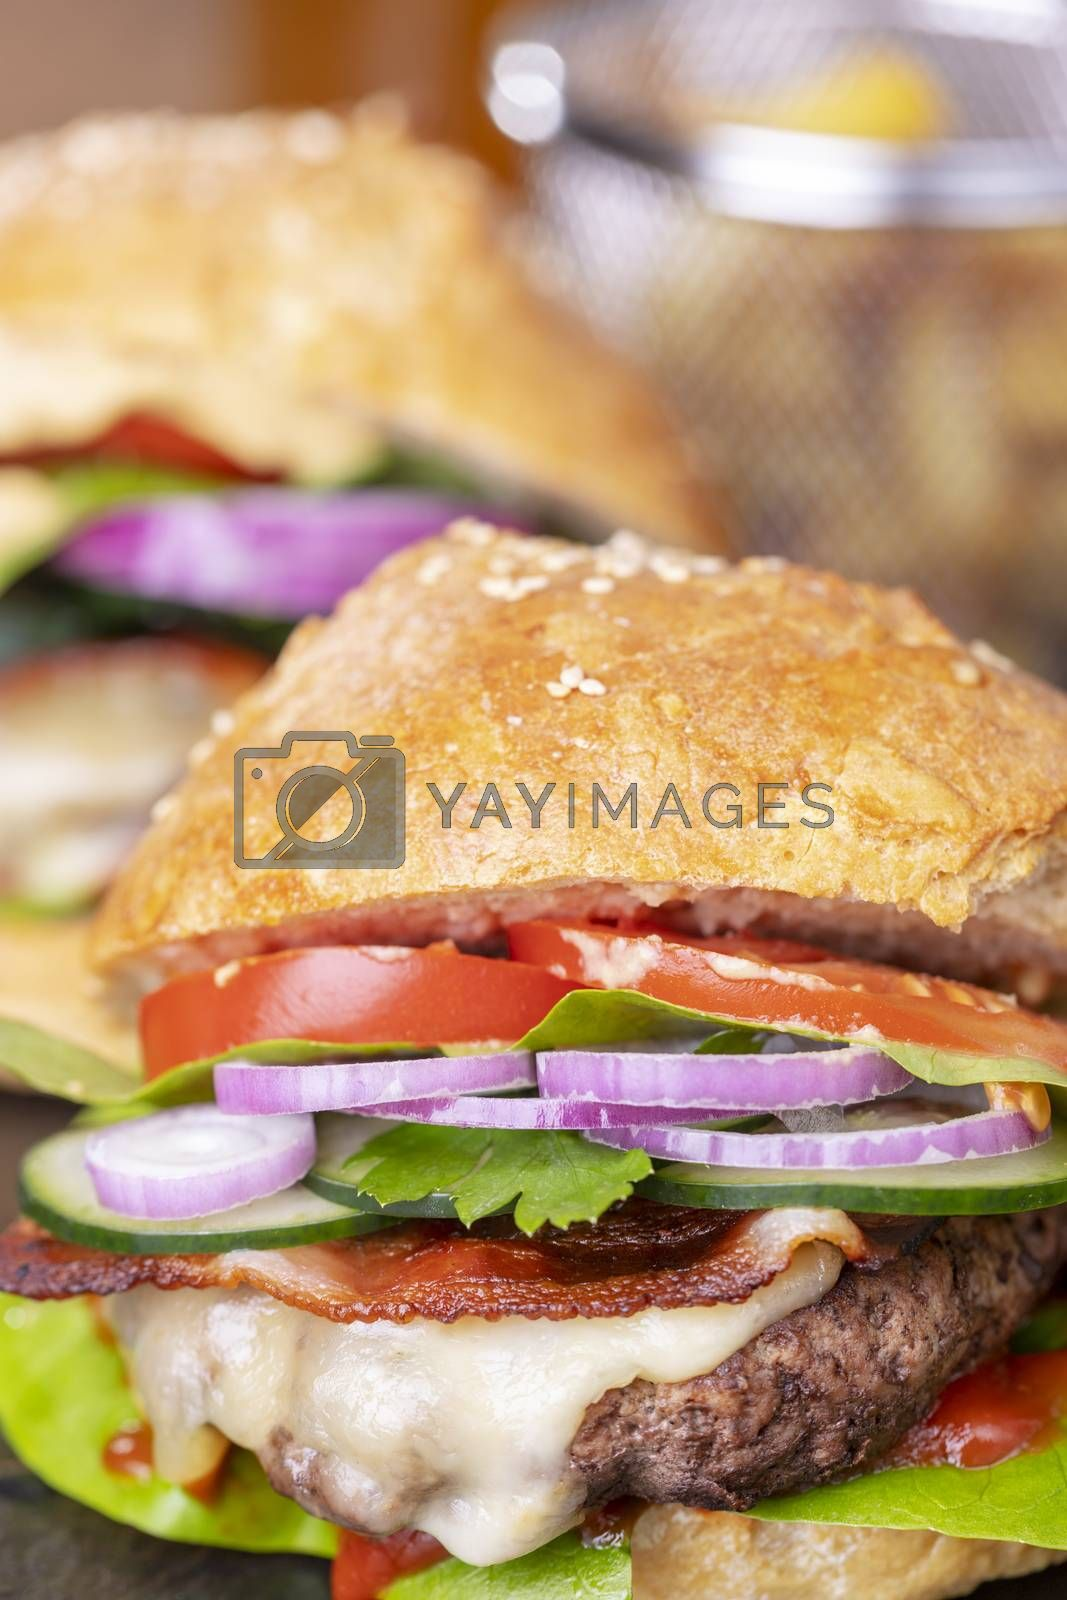 home made hamburger with french fries by bernjuer